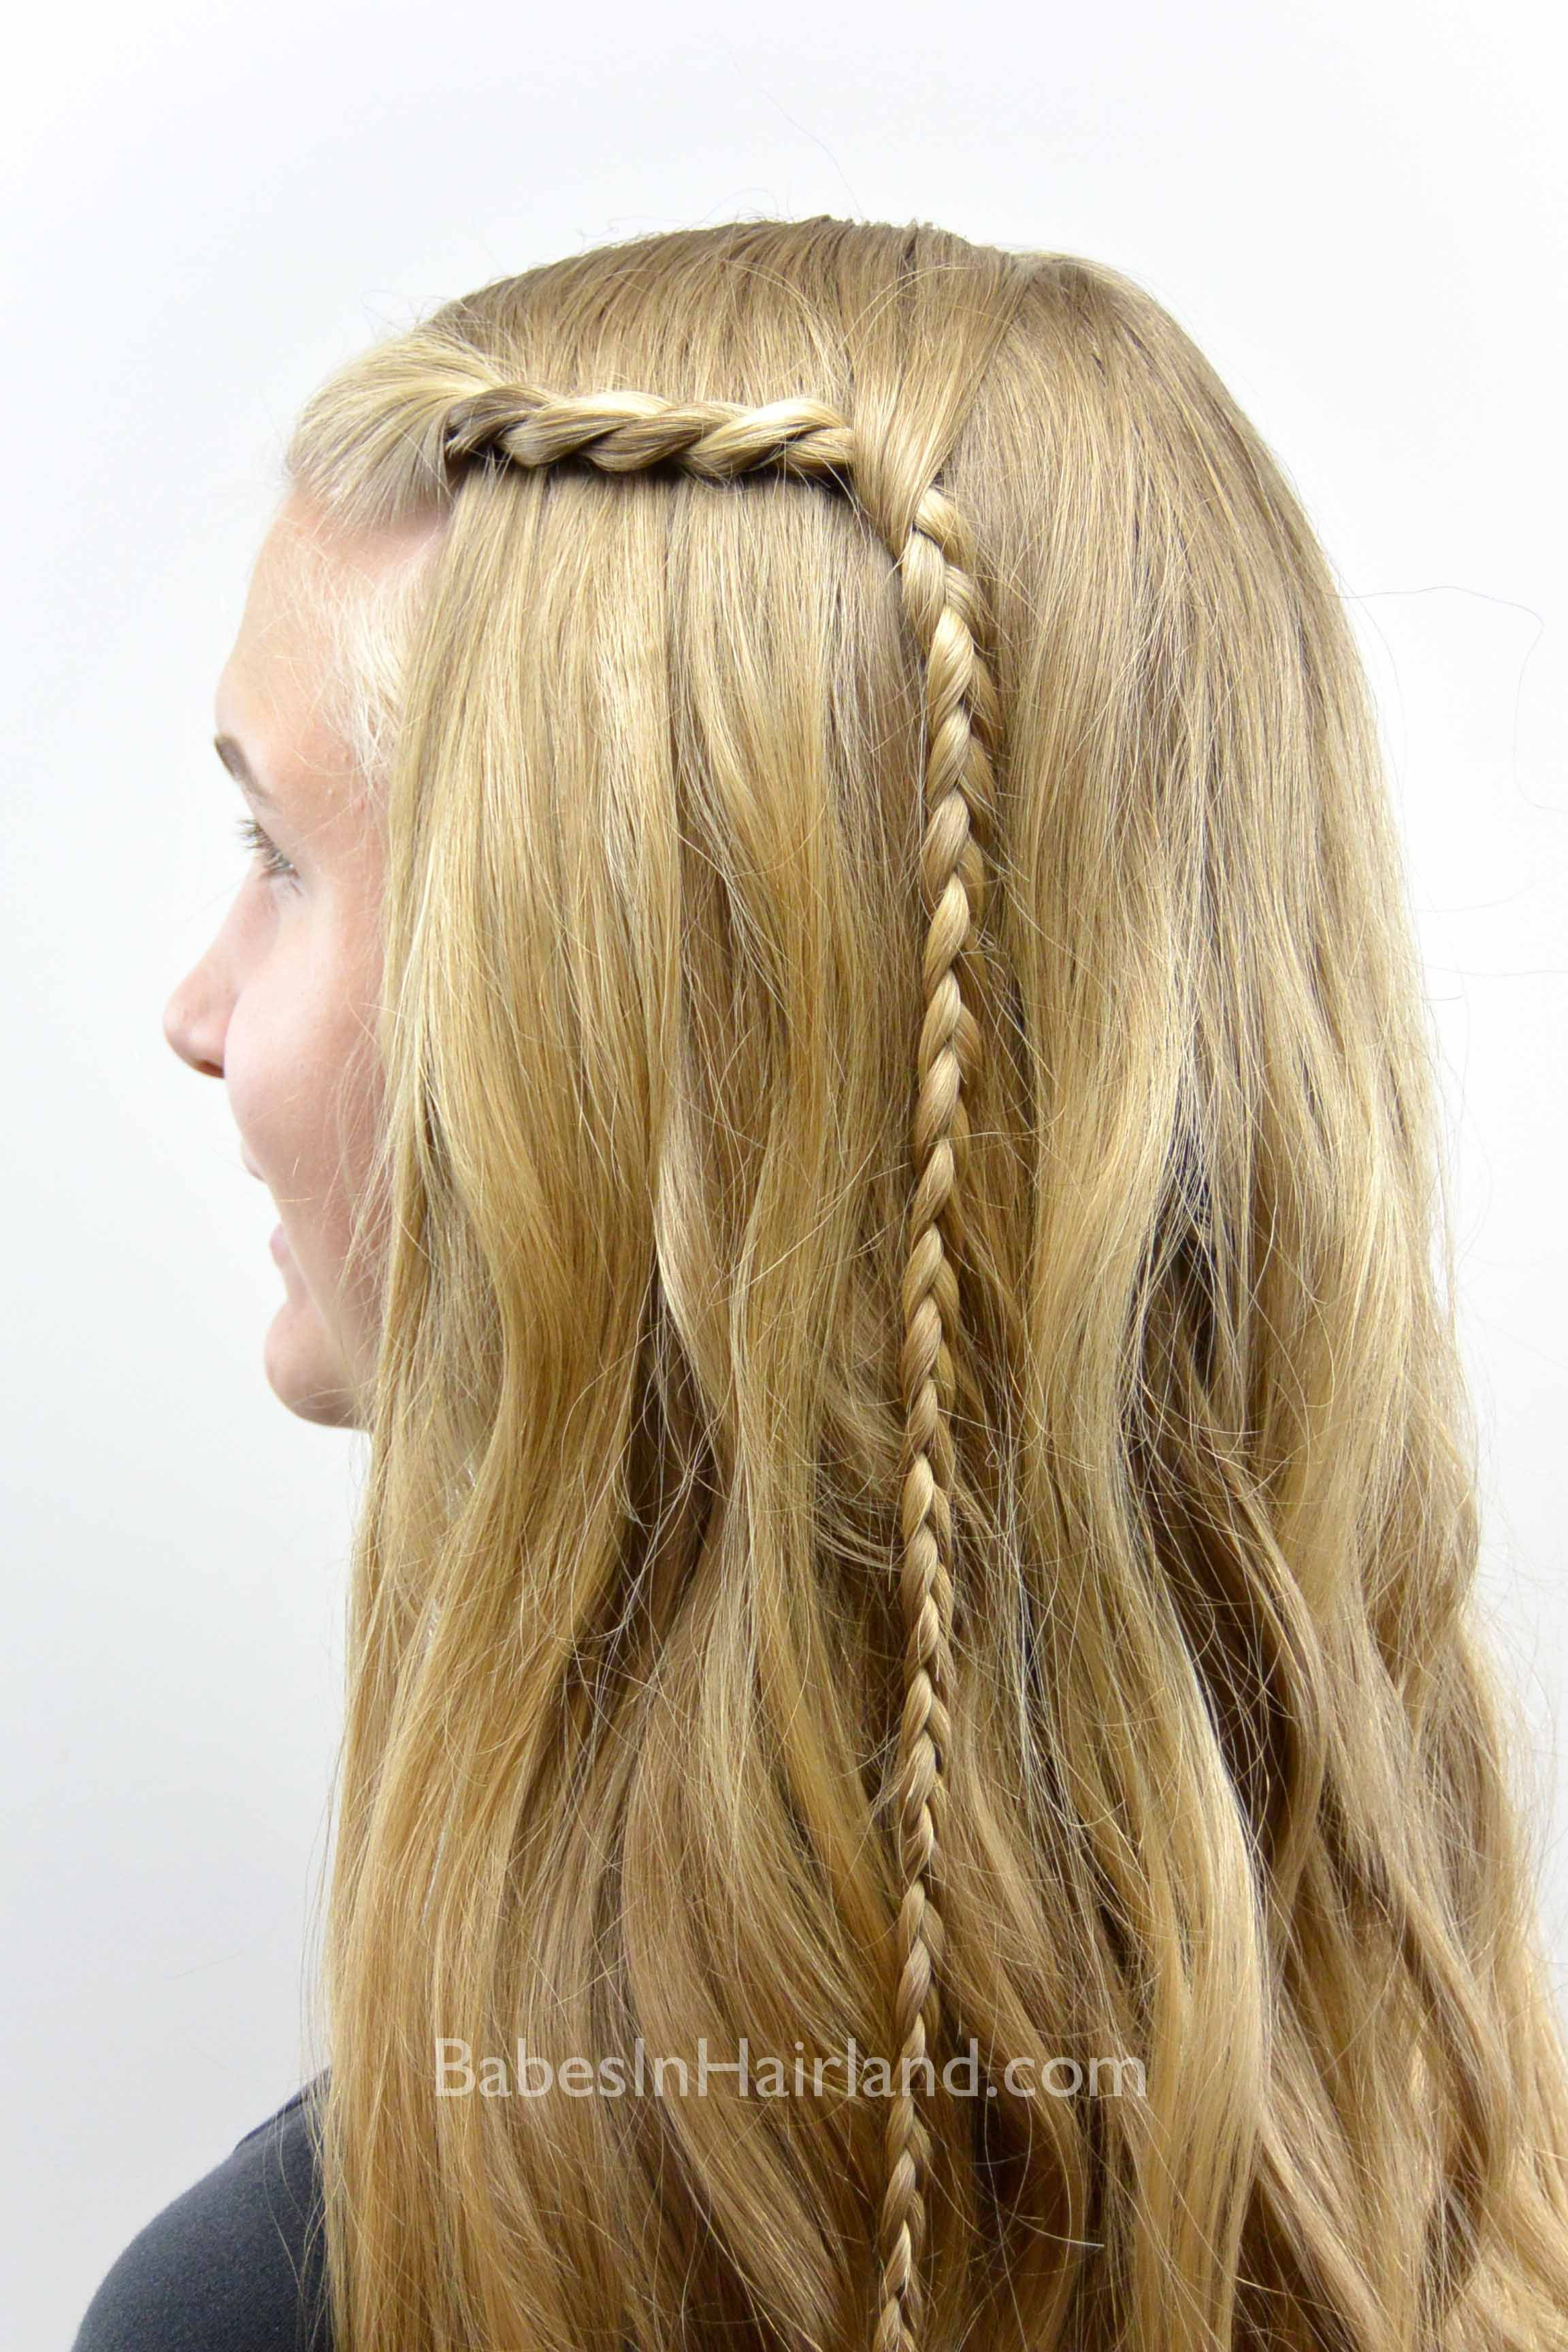 25 little girl hairstylesyou can do yourself! | hairstyles